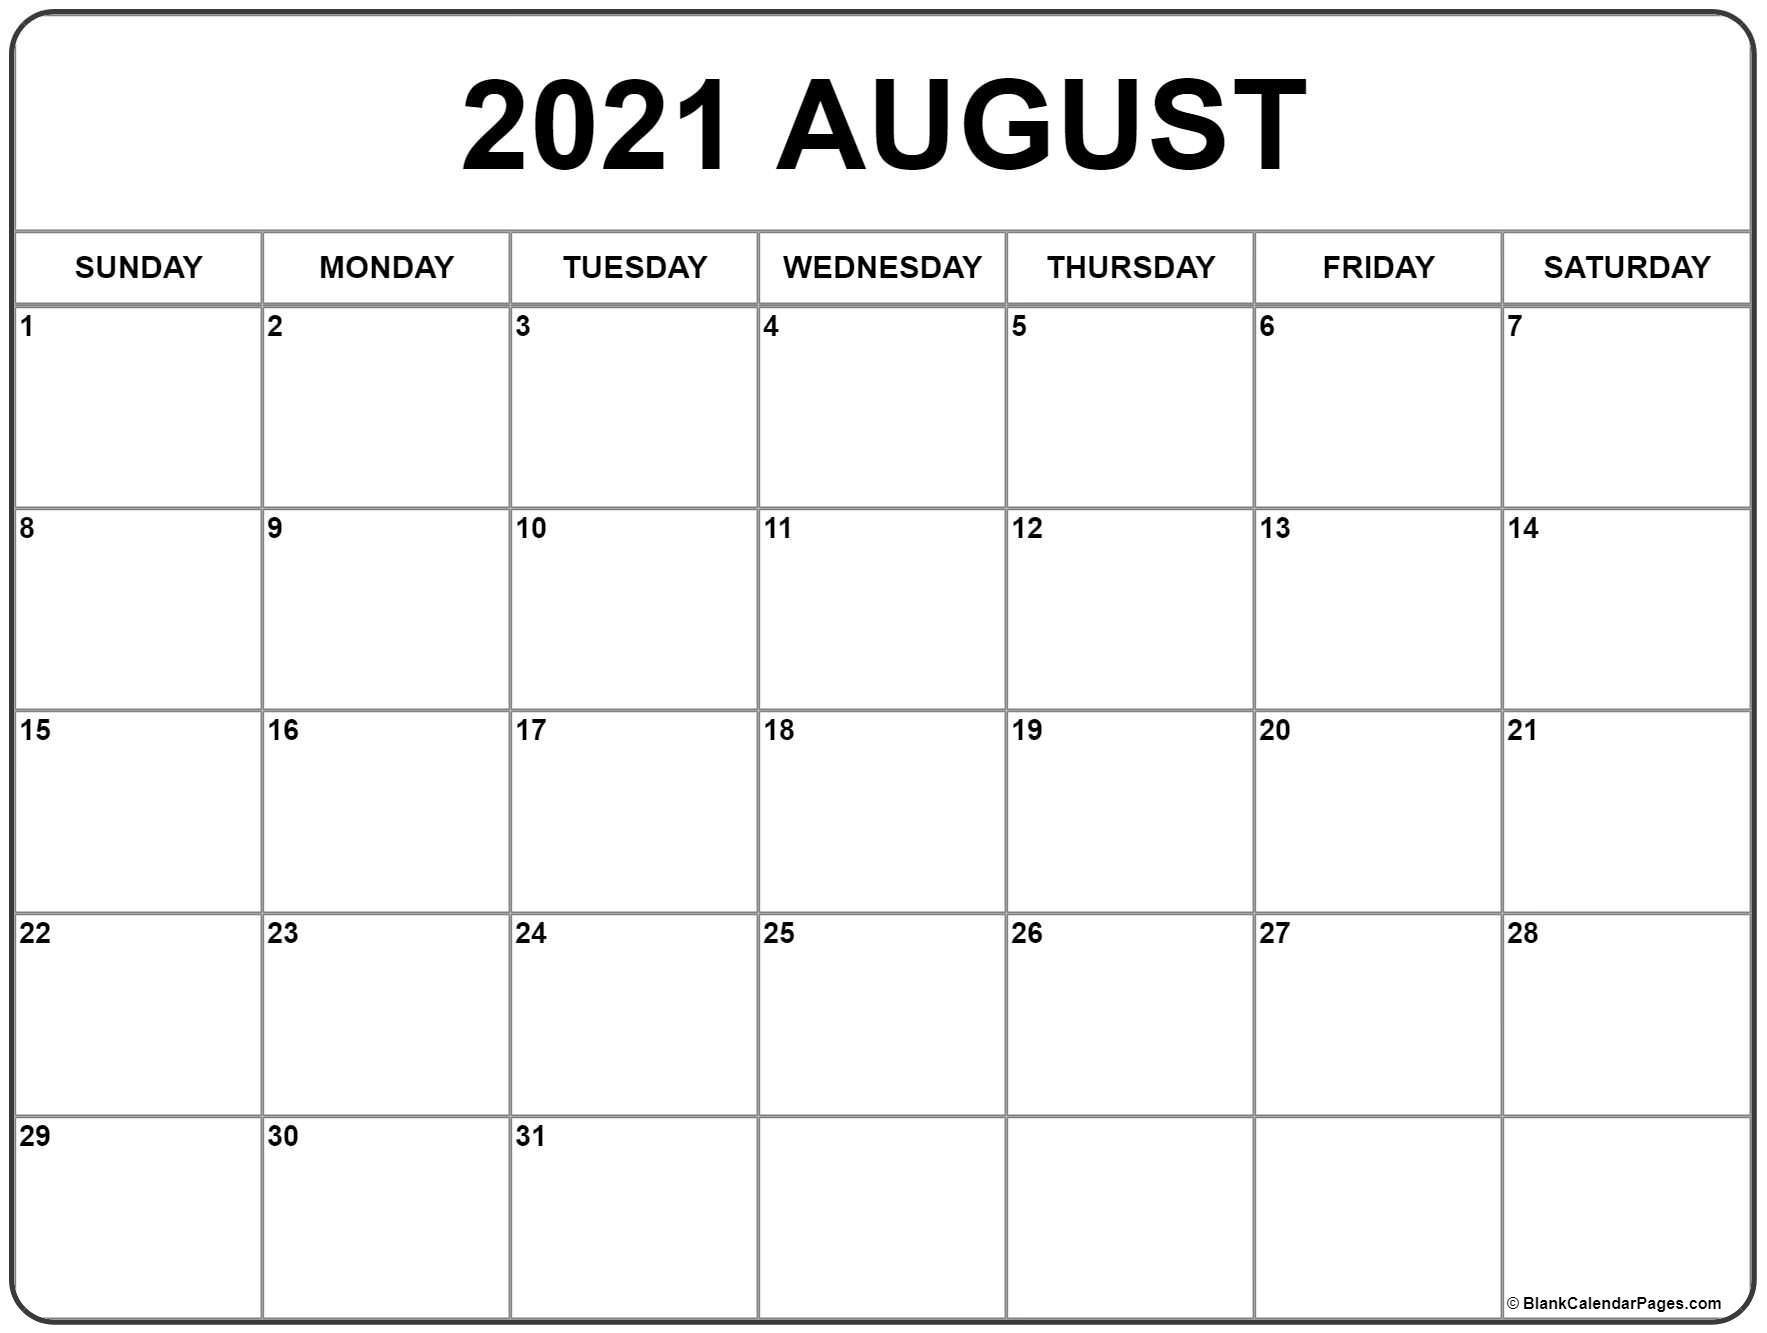 August 2021 Calendar | Free Printable Monthly Calendars  Free 2021 Monthly Calendar Printable Pdf